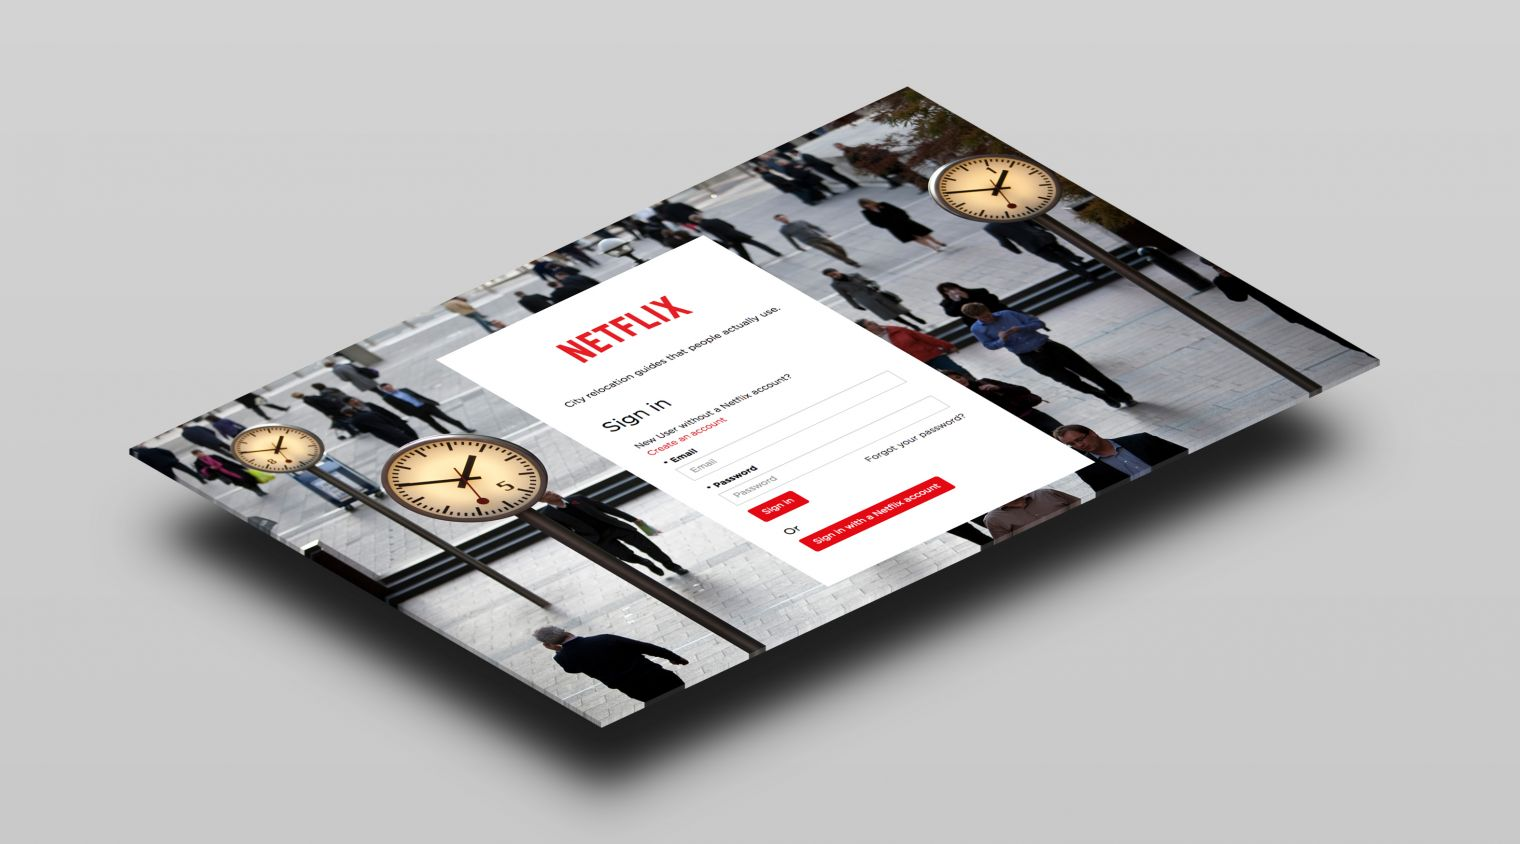 netflix-city-guide-home-page-design